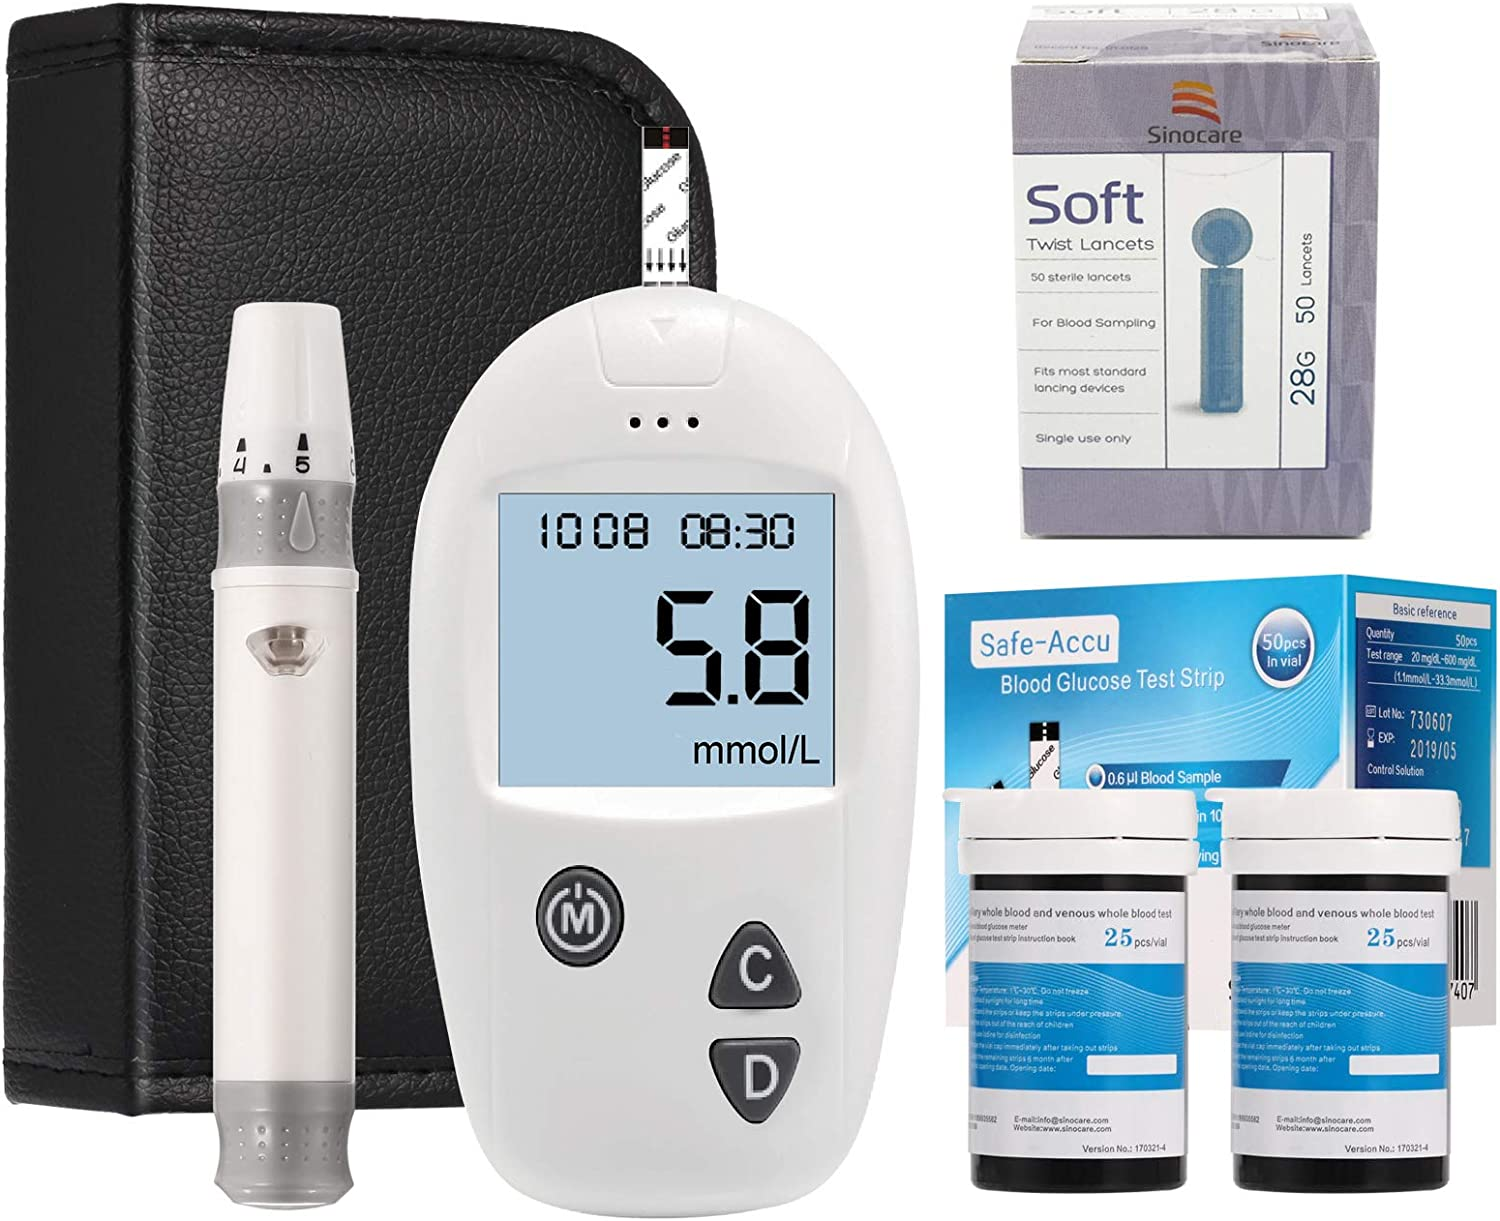 Sinocare Blood Glucose Monitoring Kit Diabetes Test Kit Blood Sugar Testing Kit Codefree Pack 50 Strips For Uk Diabetics Eligible For Vat Relief In The Uk Amazon Co Uk Health Personal Care